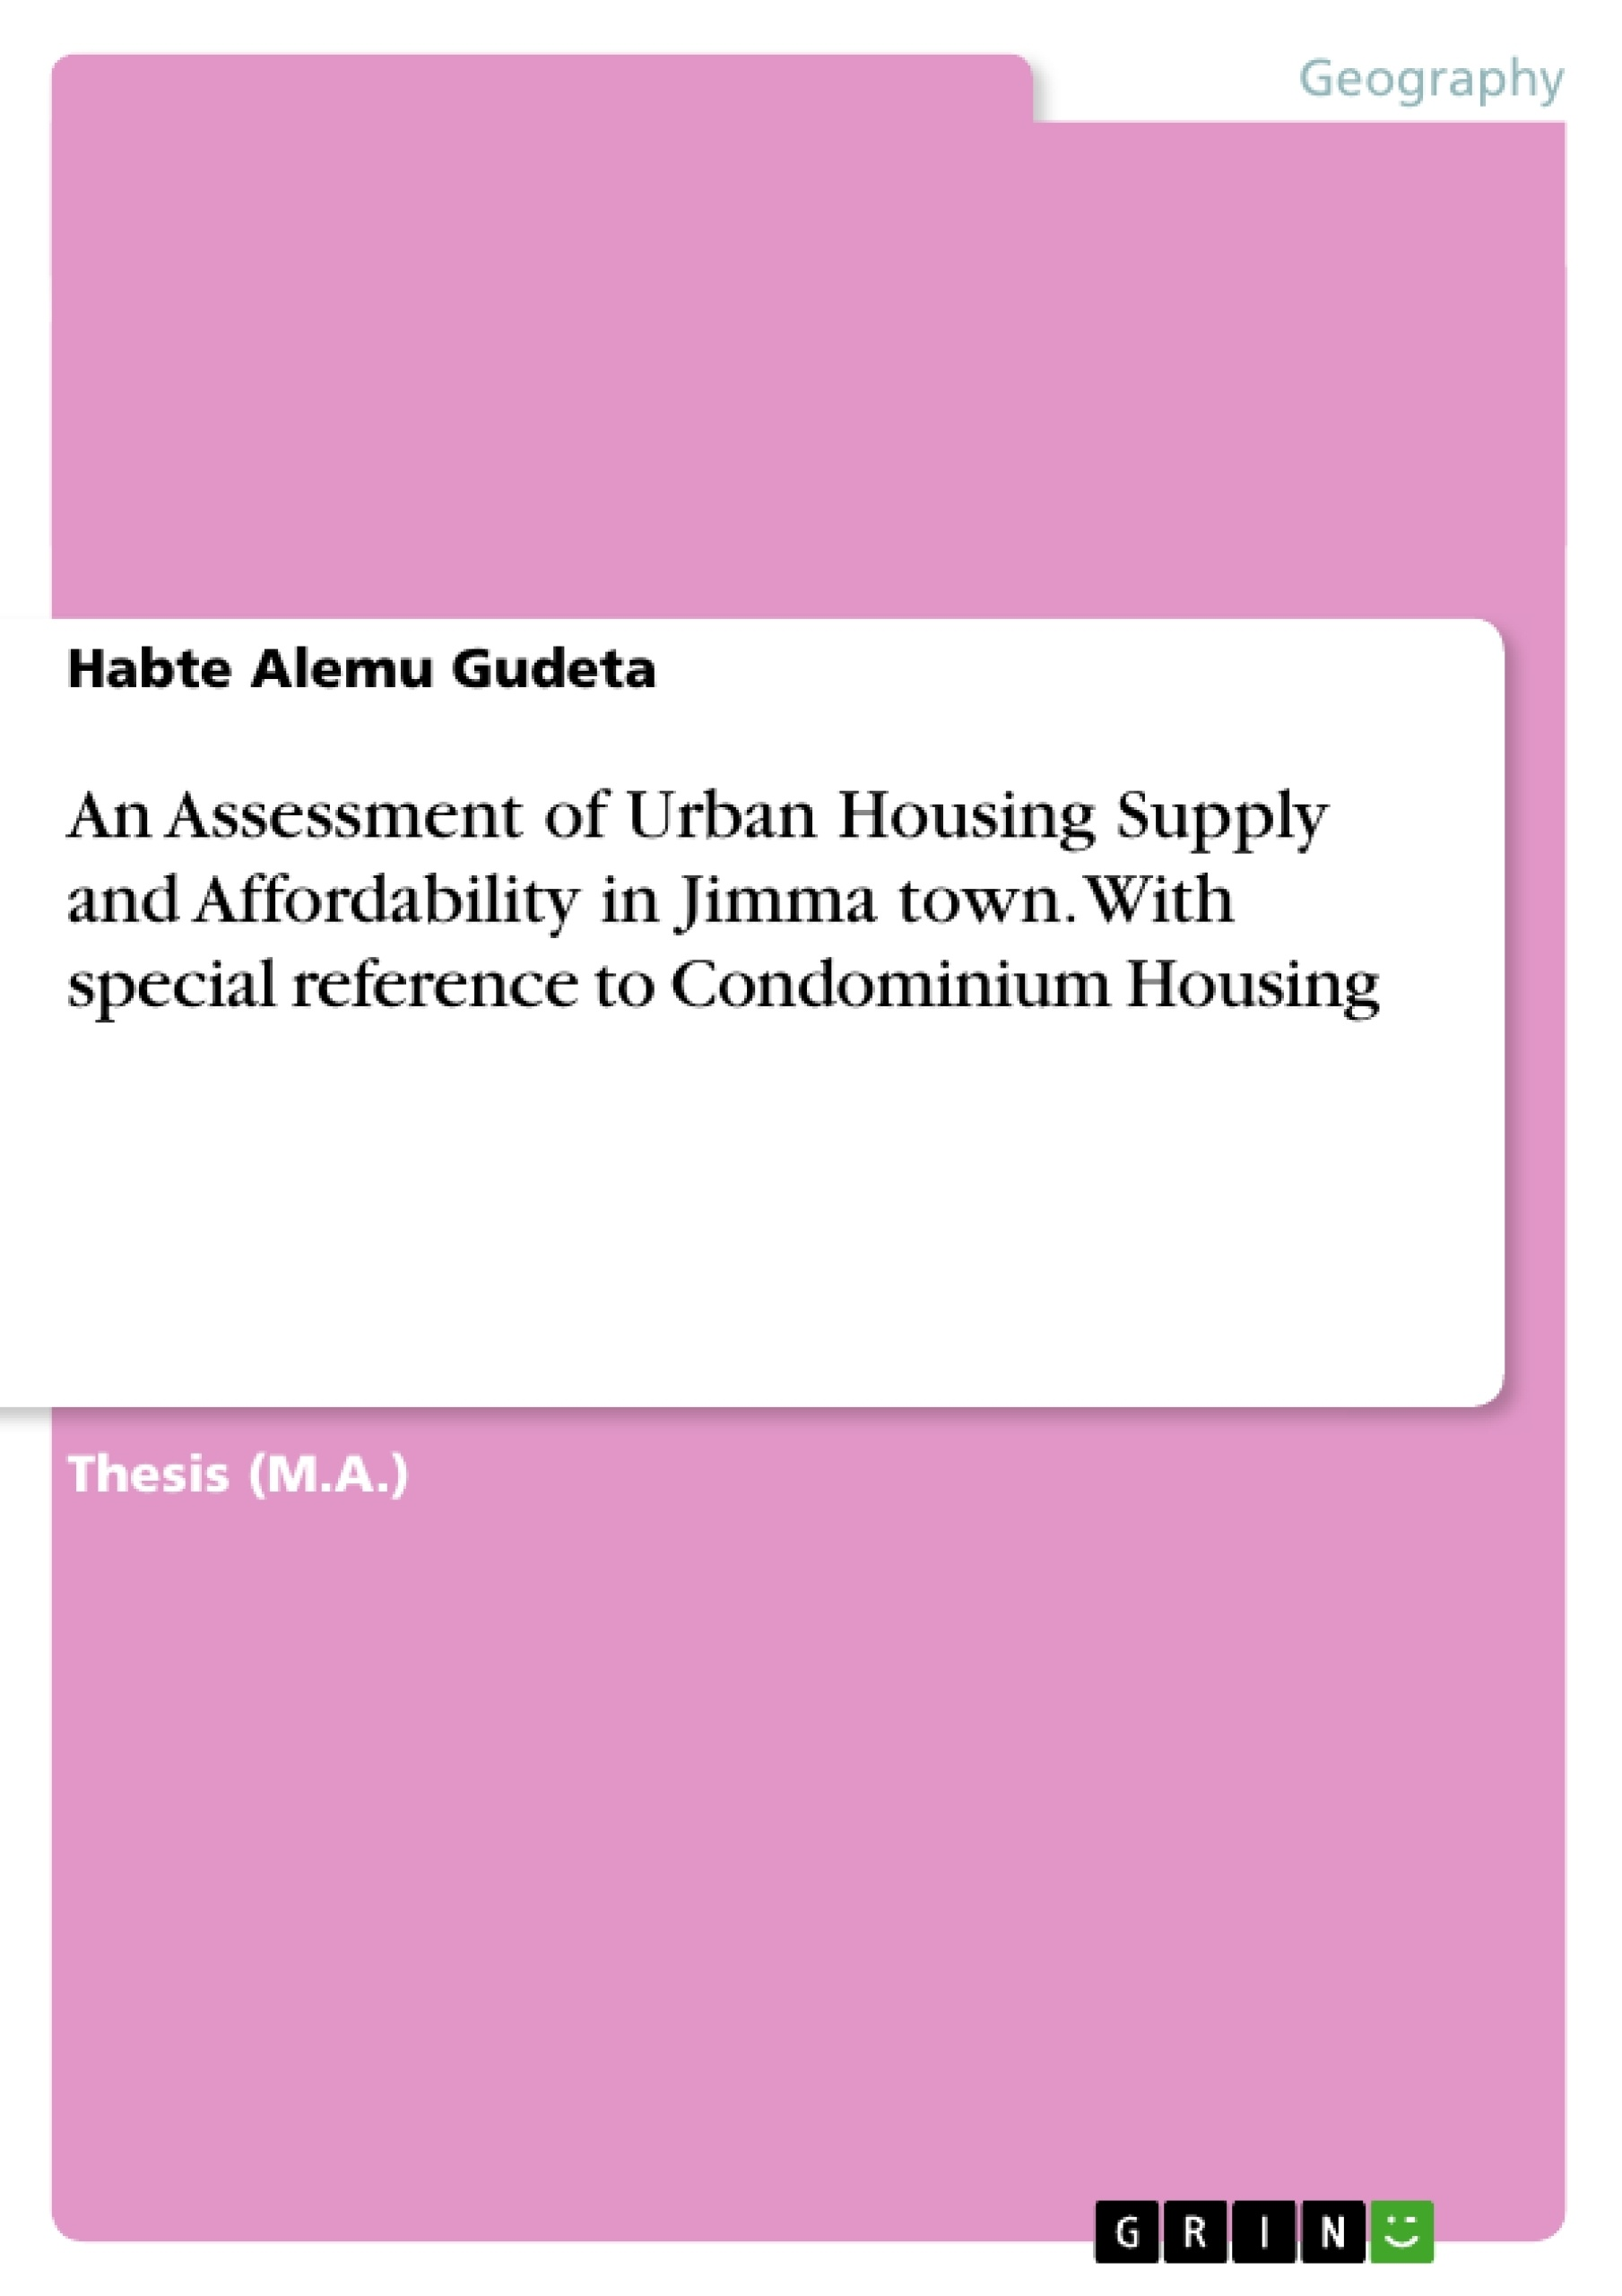 GRIN - An Assessment of Urban Housing Supply and Affordability in Jimma  town  With special reference to Condominium Housing